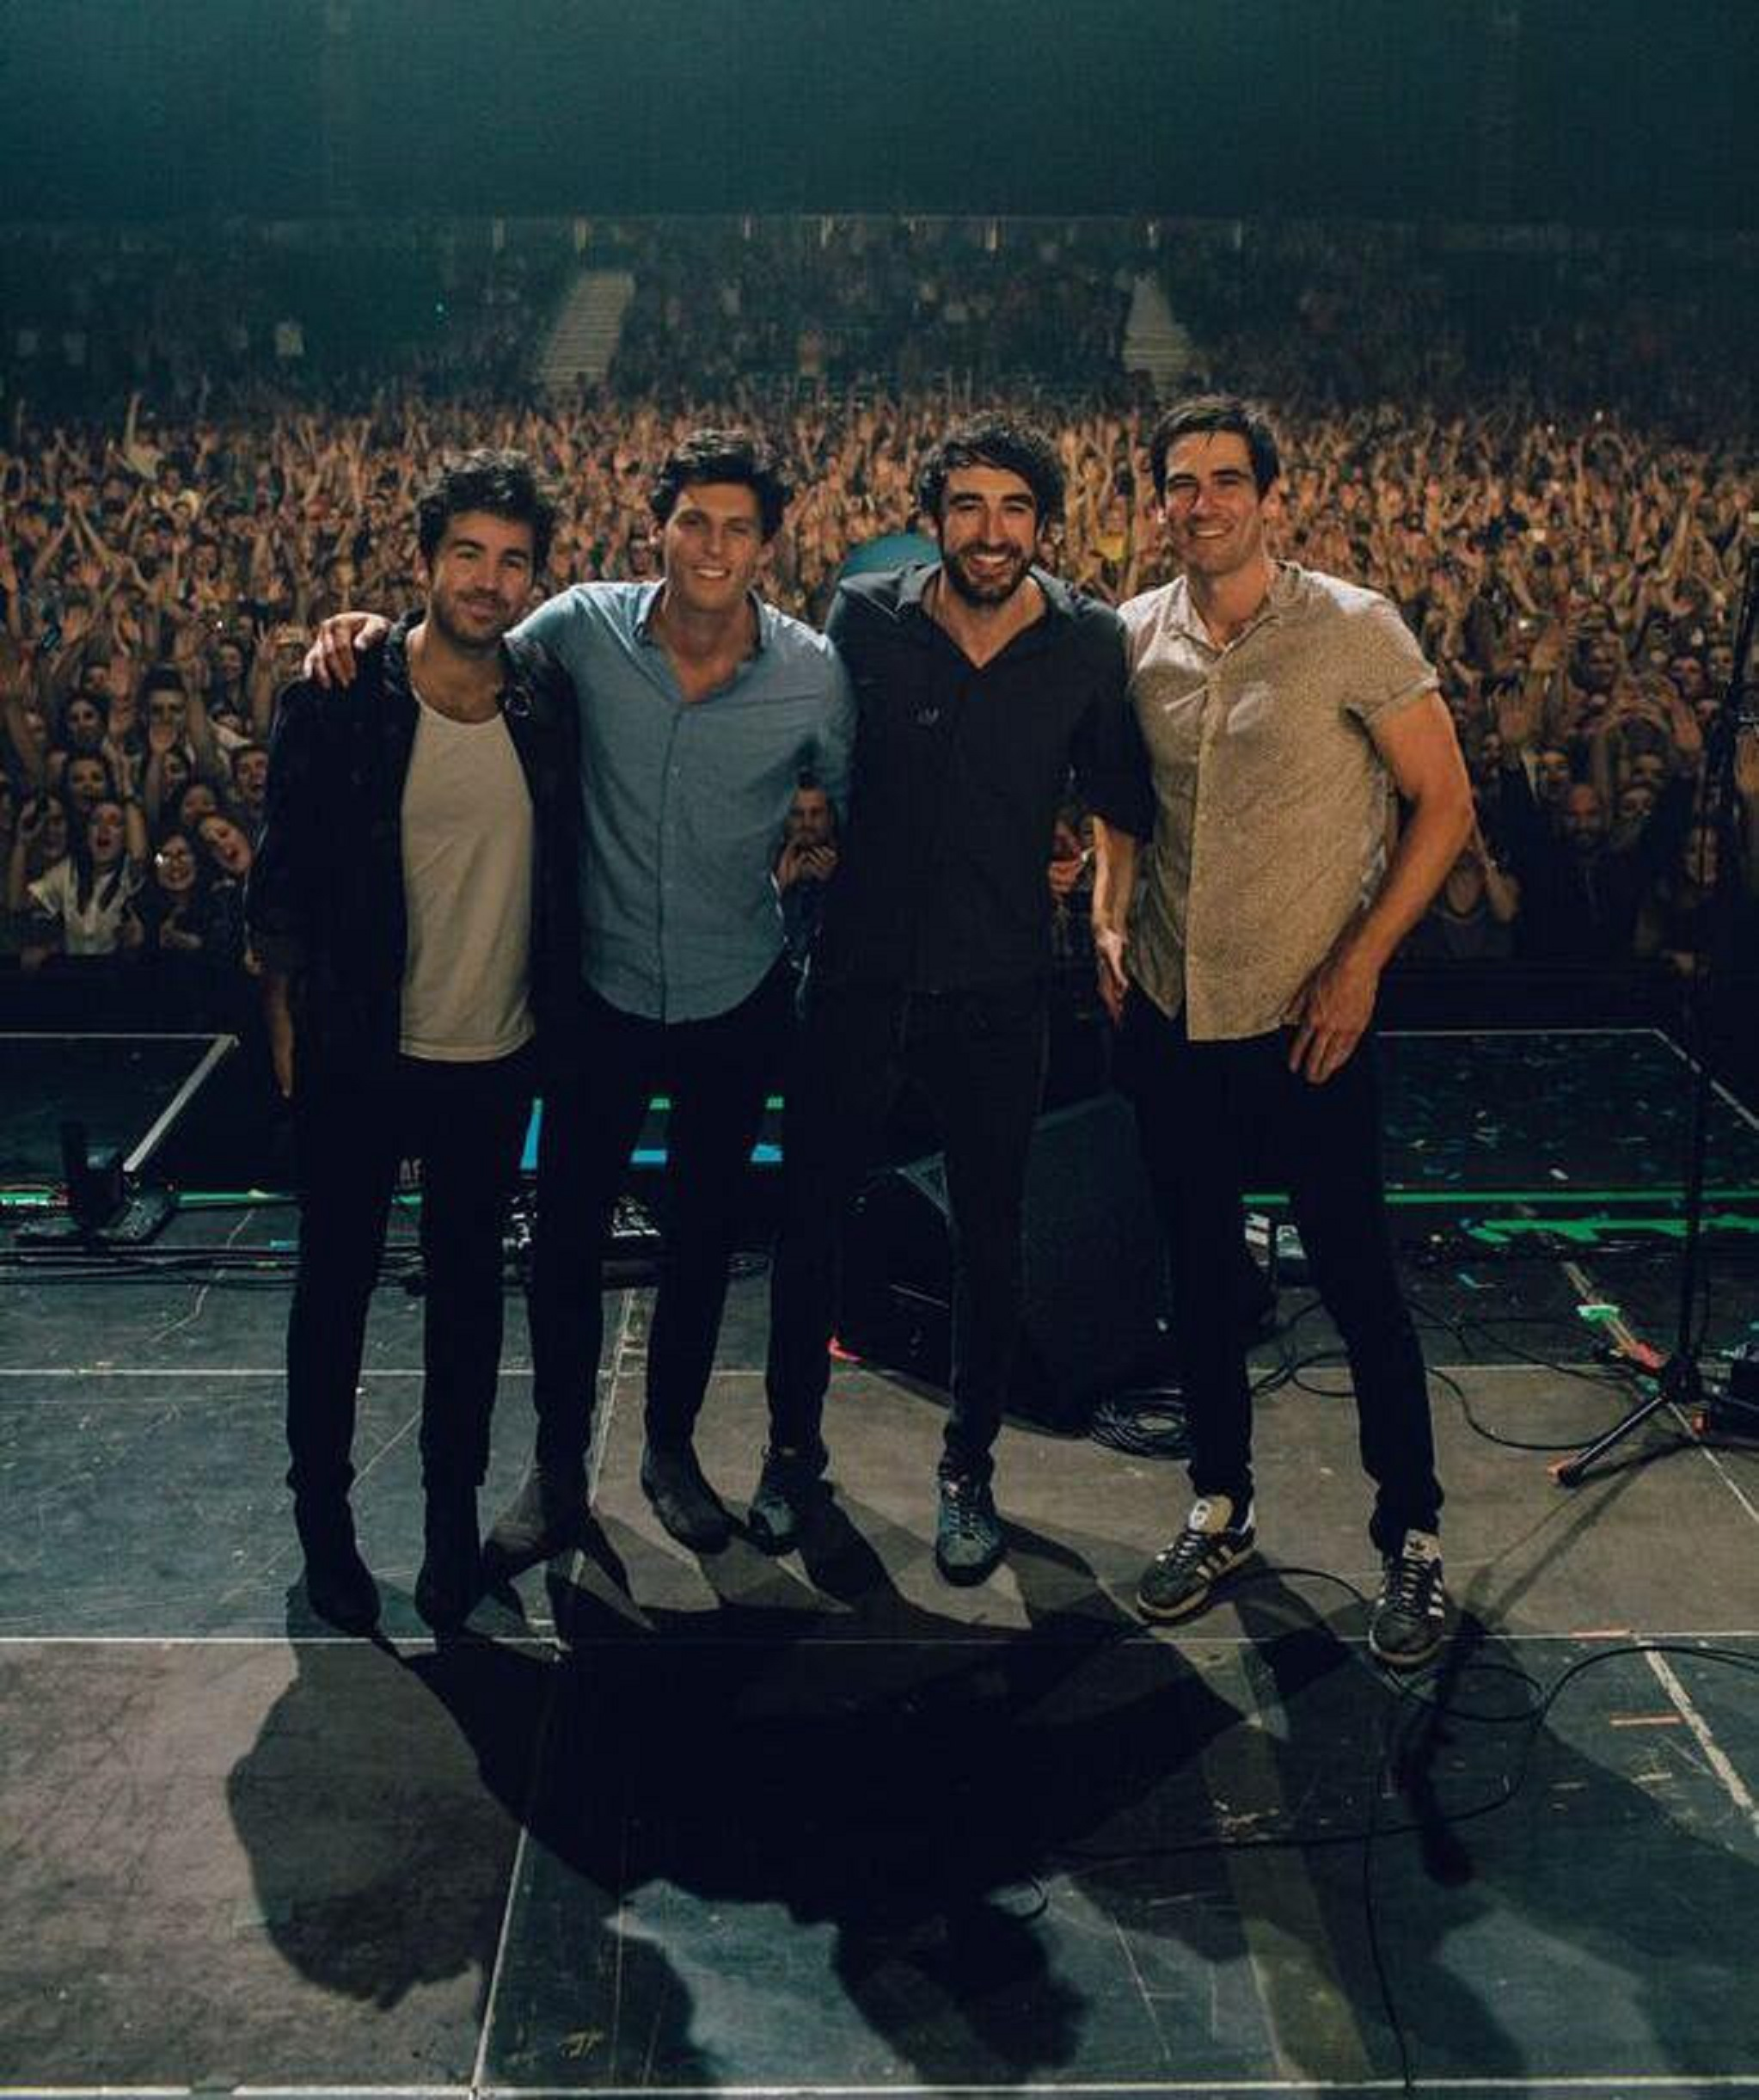 The Coronas Return to North America for Shows Beginning February 8